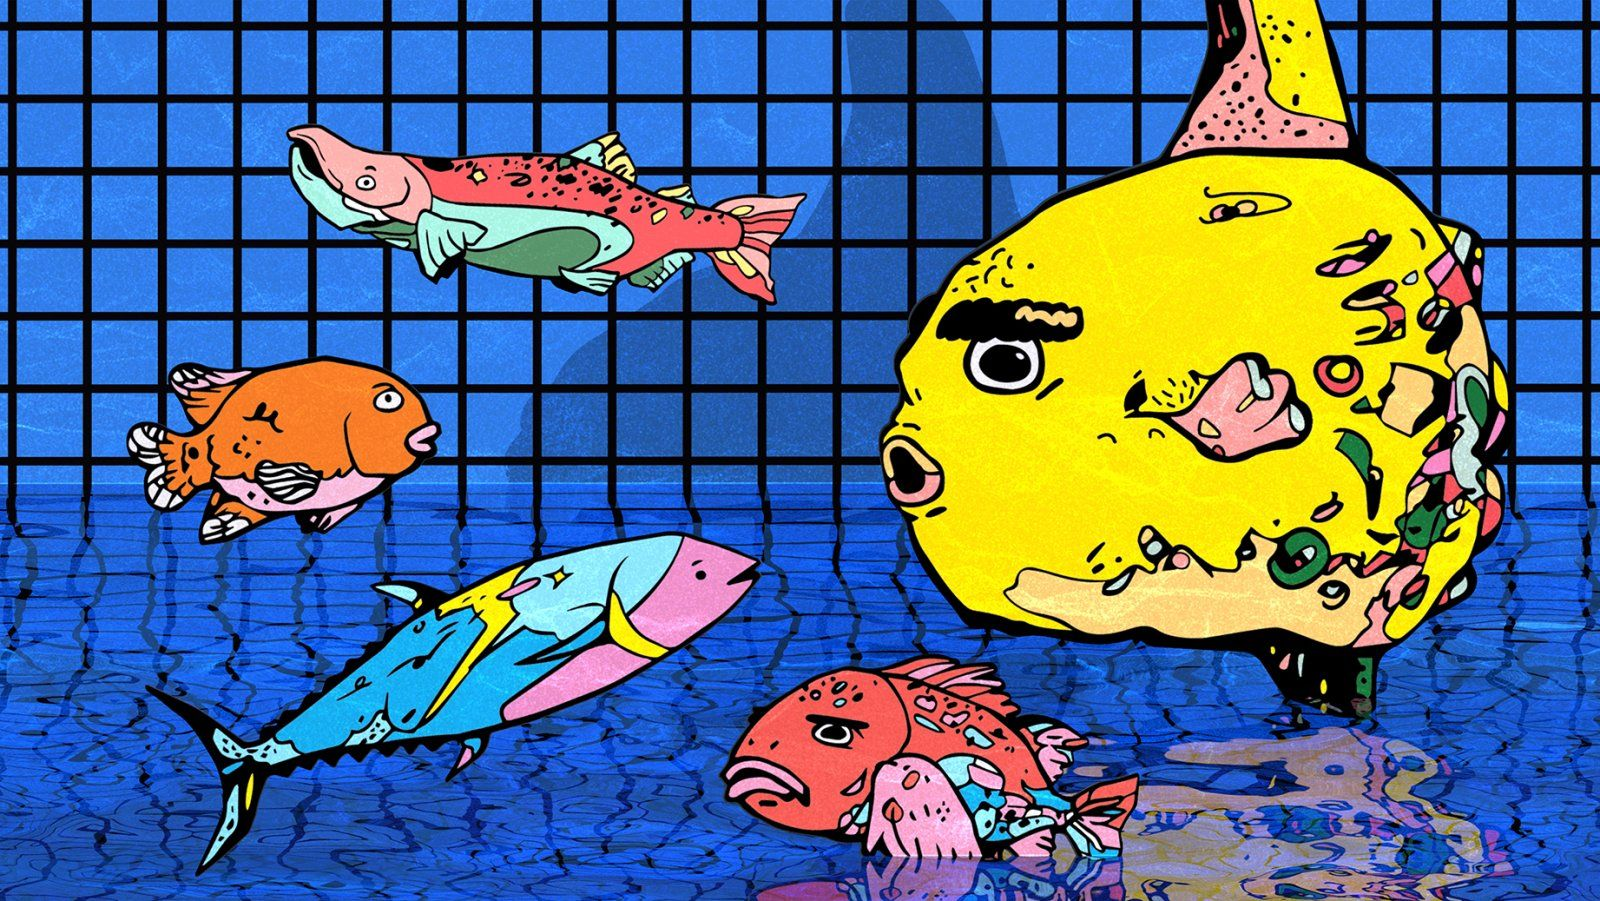 16by9-fish-cover-image-5(small).jpg